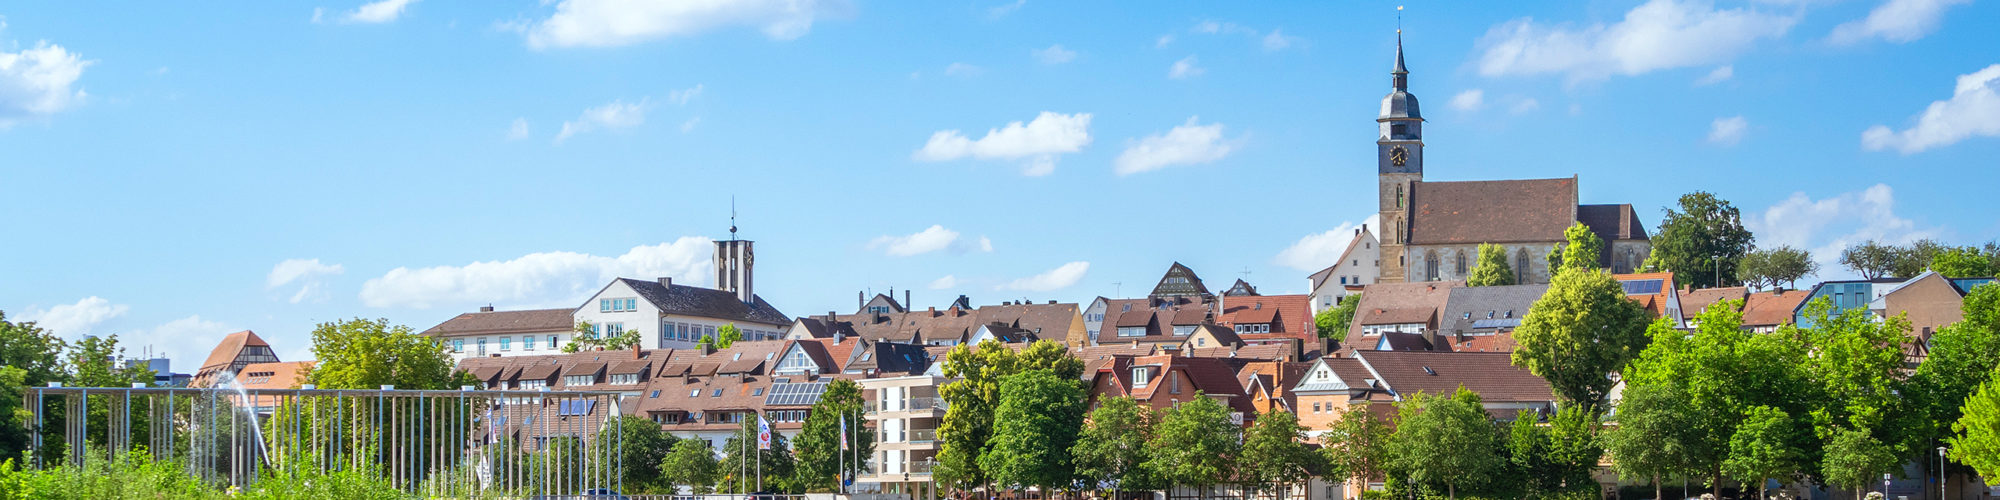 Böblingen, location of the valantic Supply Chain Excellence Office